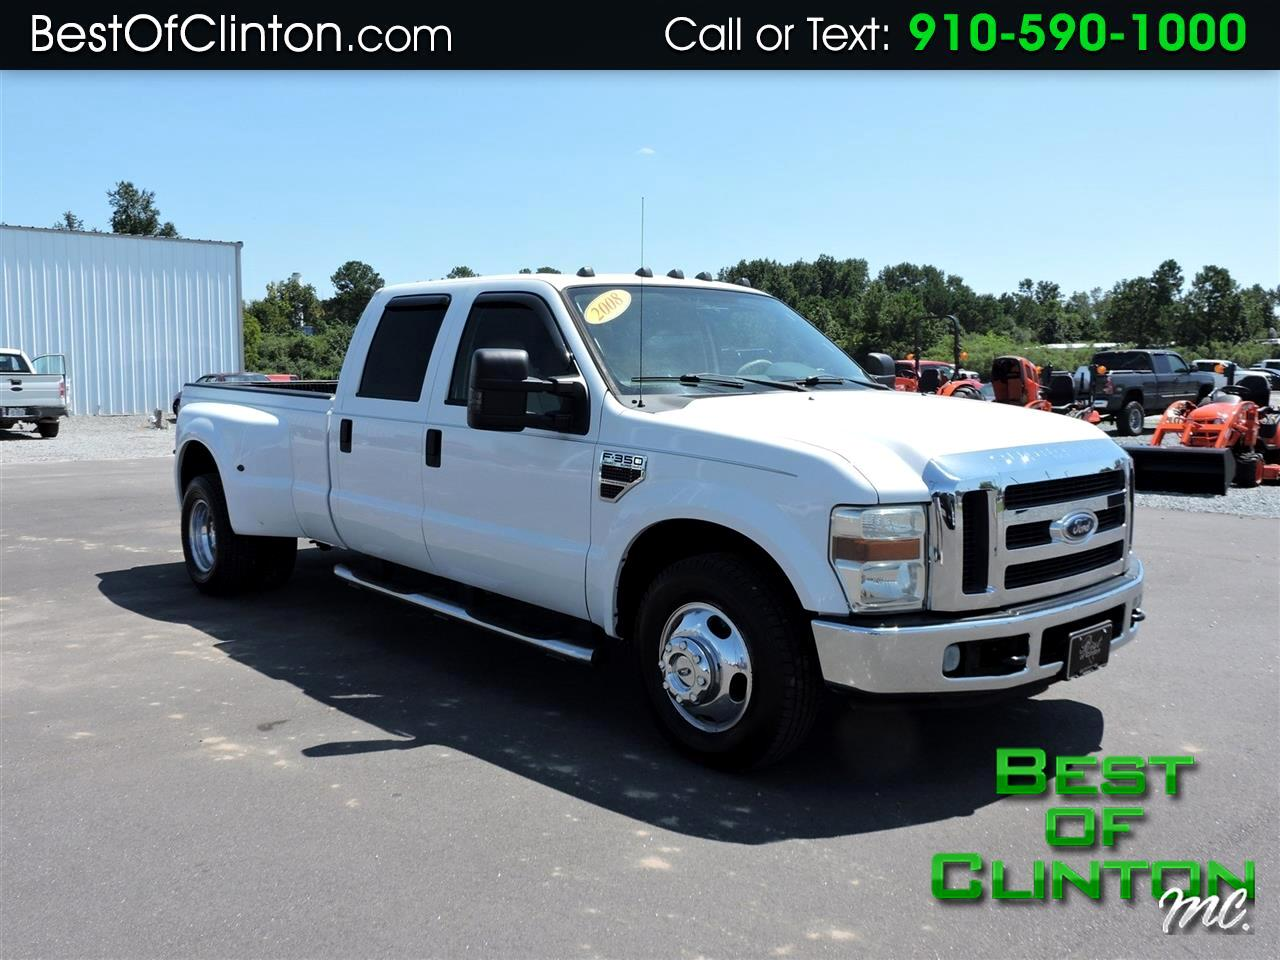 2008 Ford Super Duty F-350 DRW 2WD Crew Cab 156